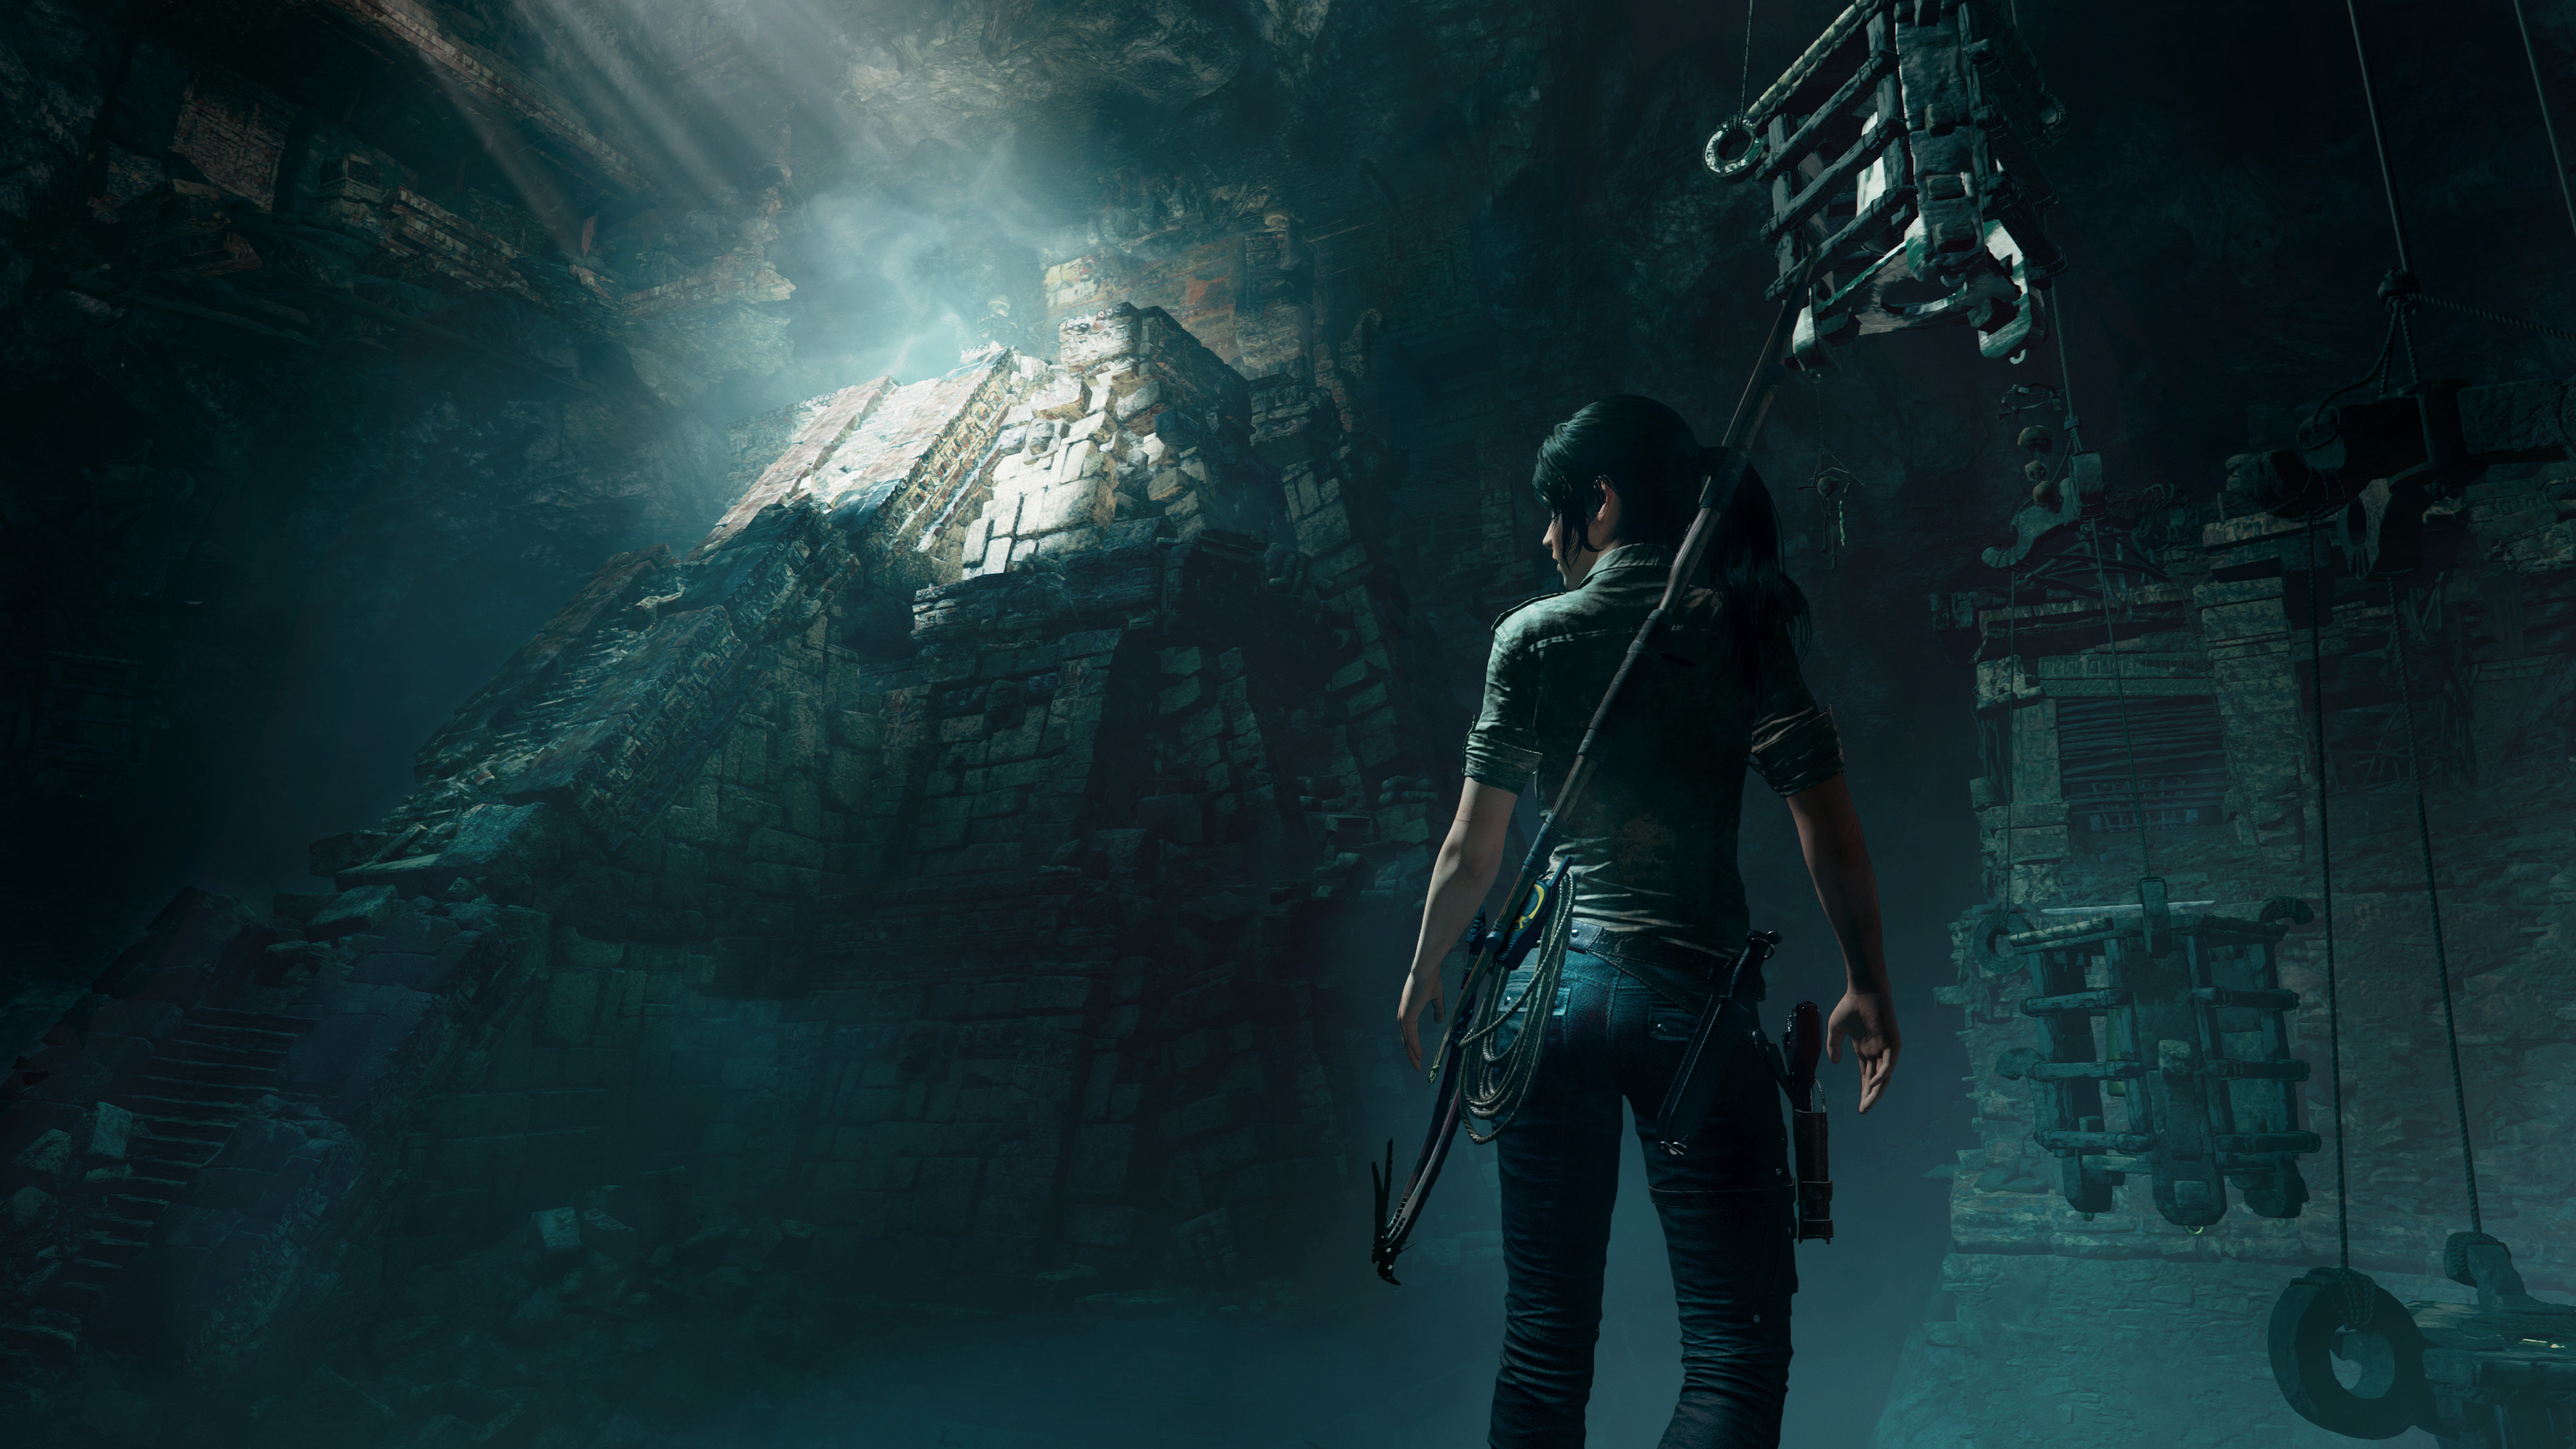 Shadow-of-the-Tomb-Raider-Tomb-ps5-xbox-scarlet-1